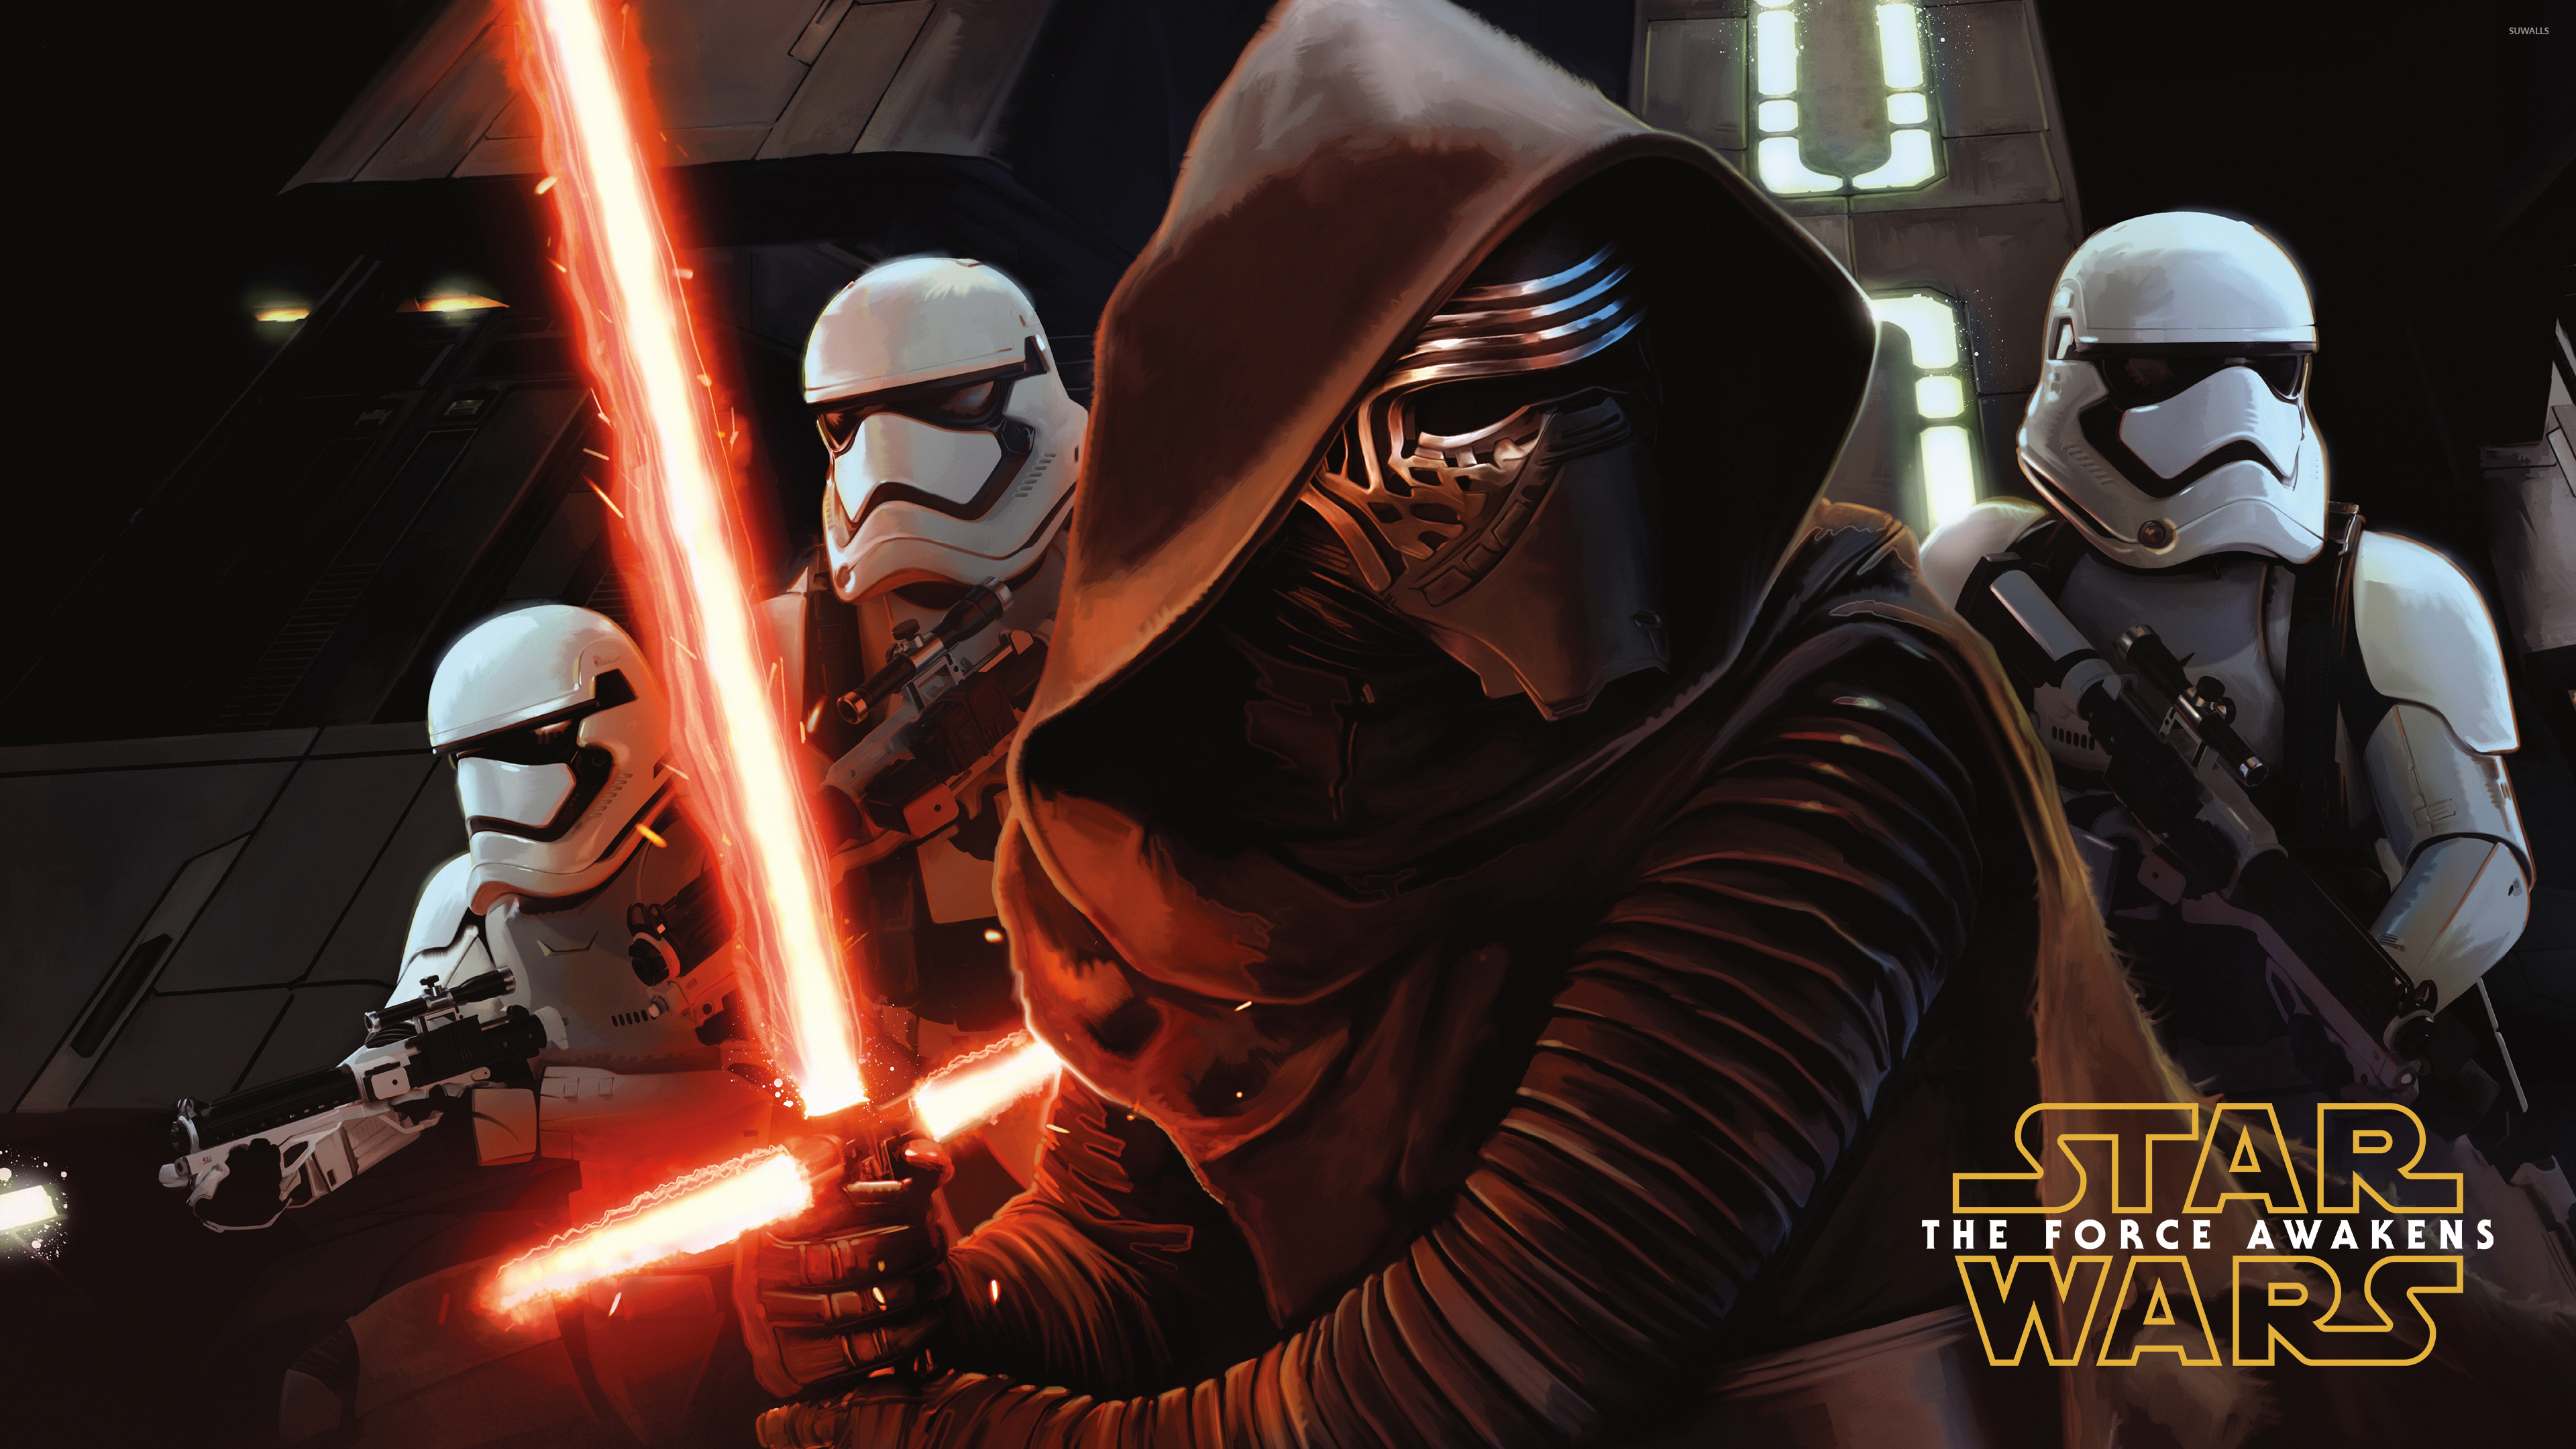 Star Wars Kylo Ren Wallpaper Posted By Ethan Anderson